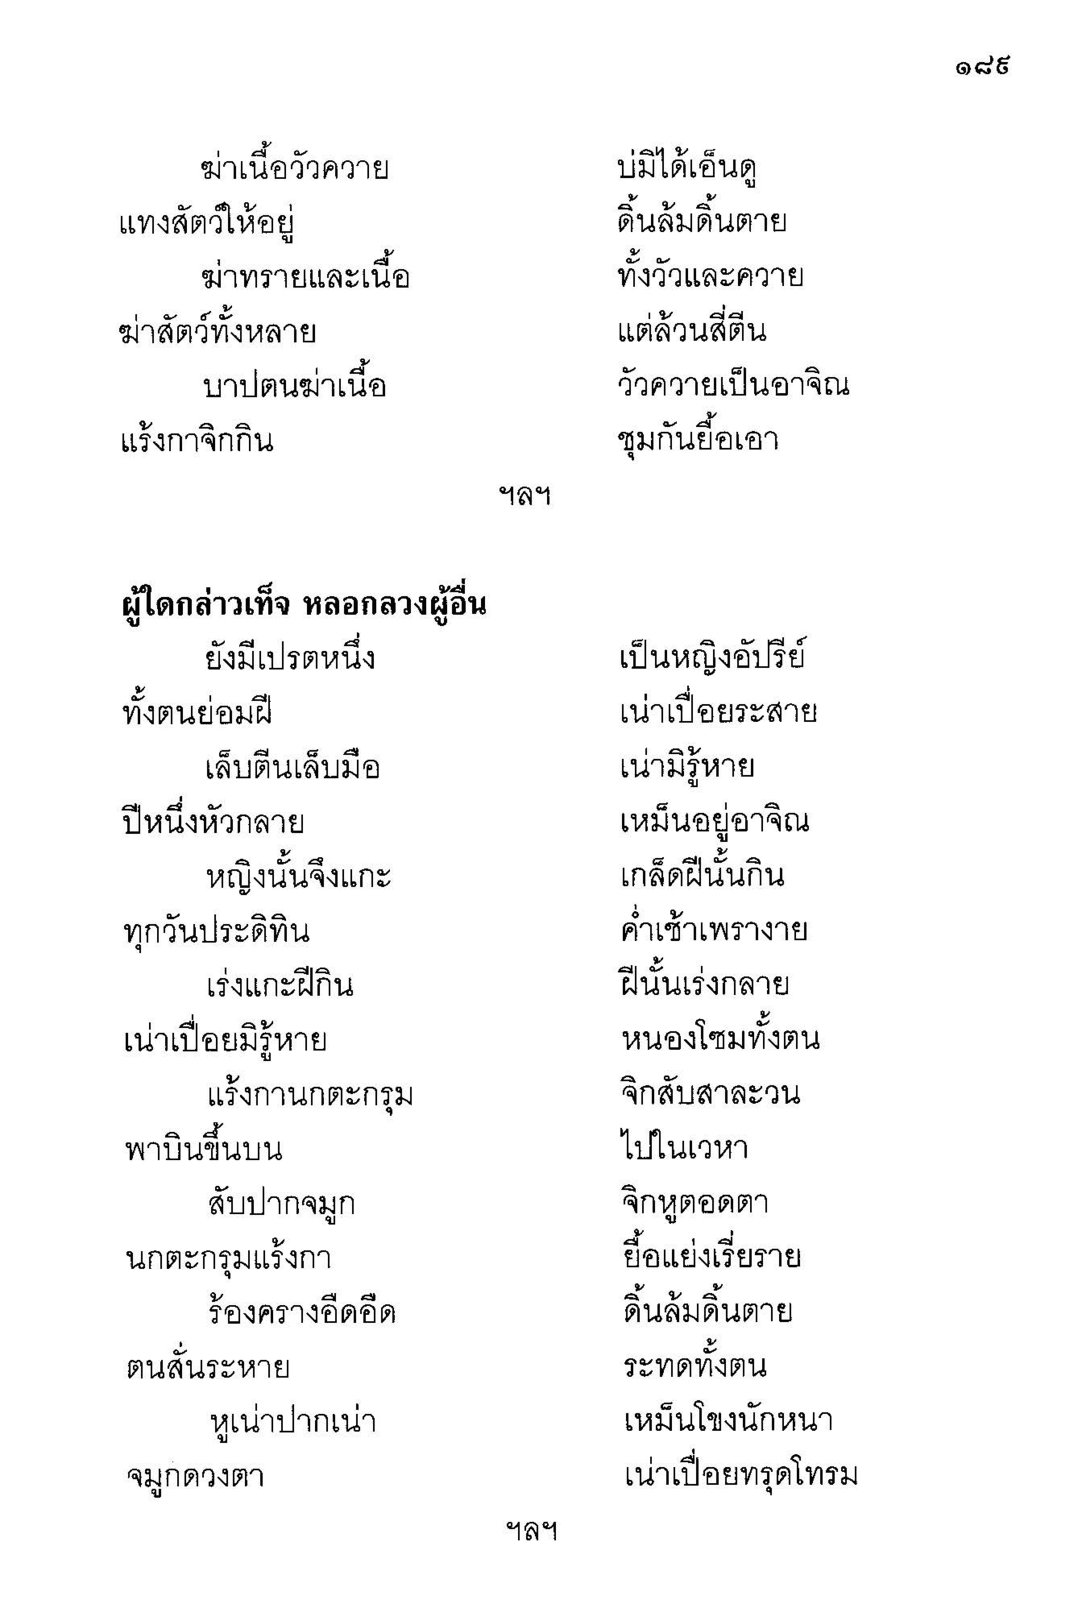 ebook_thai_sect_2_65-990_Page_197.jpg